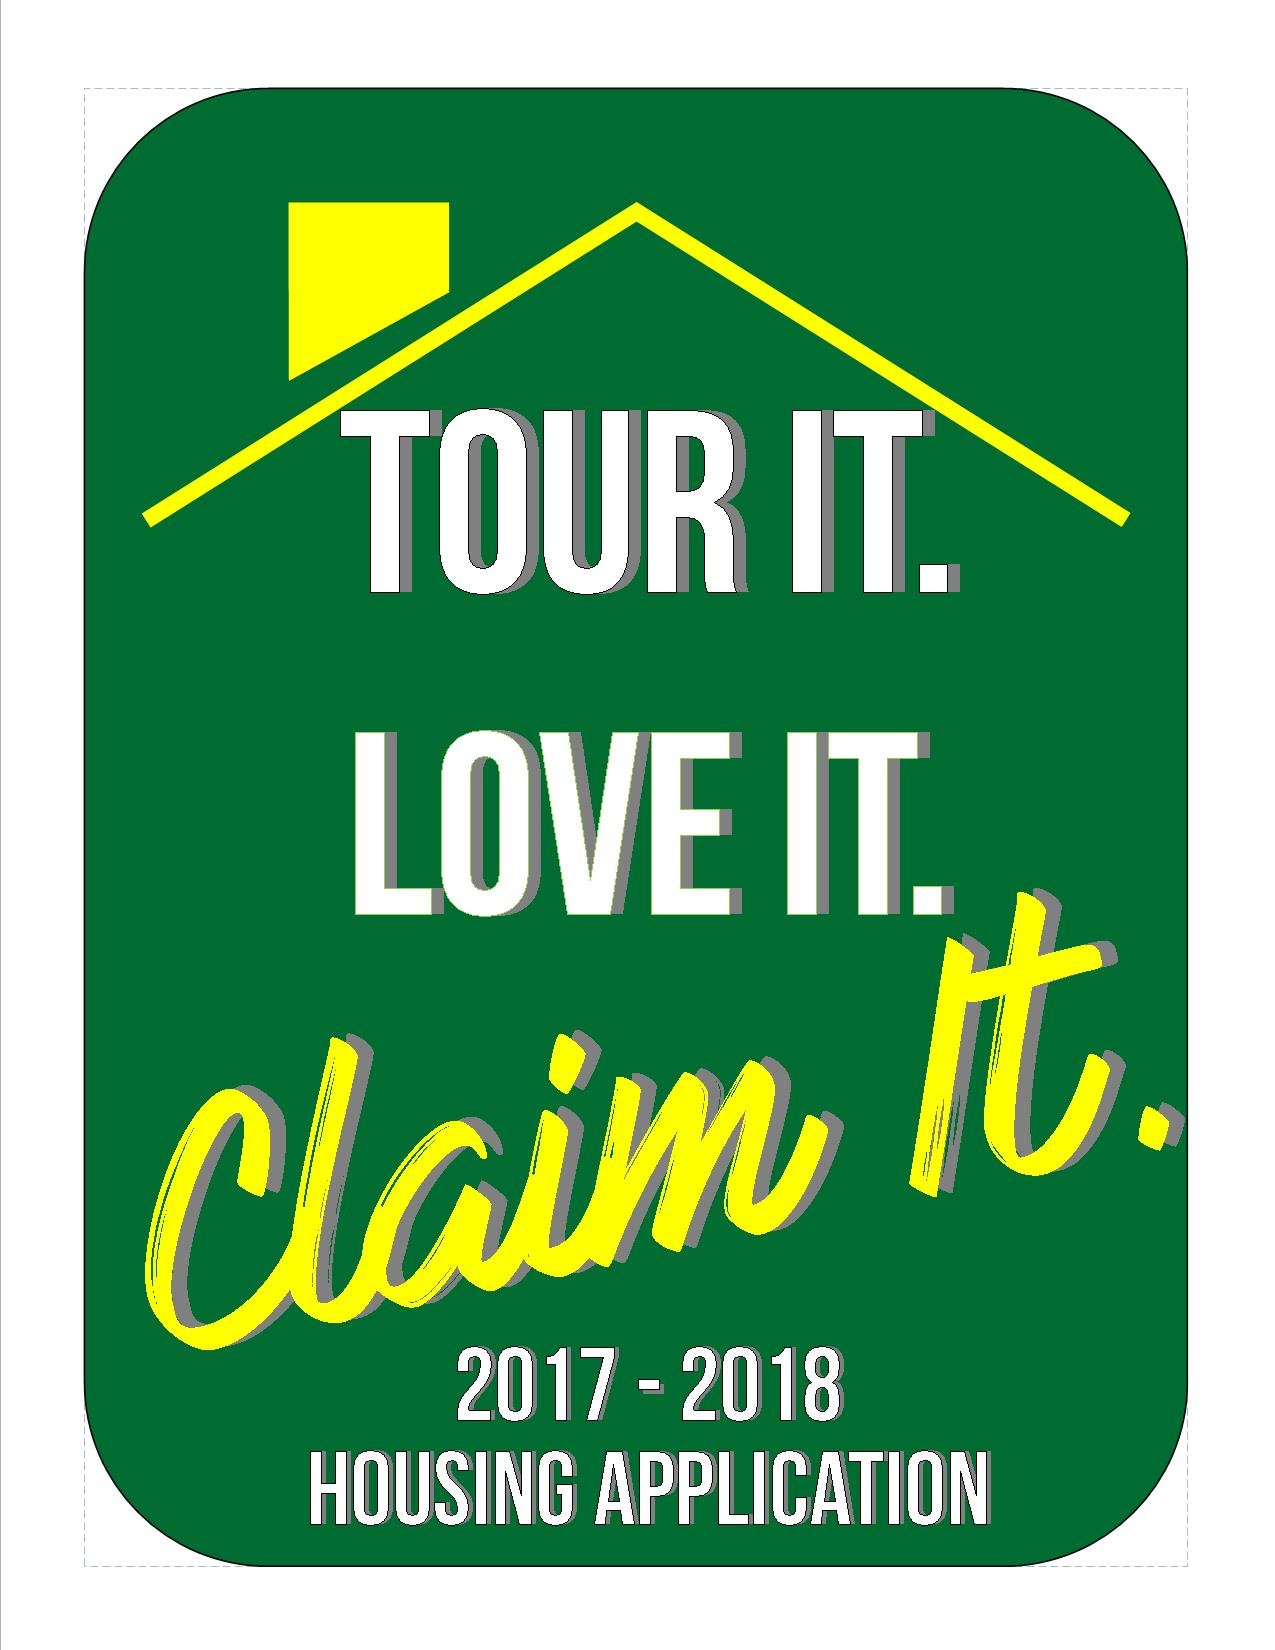 Tour it, love it, claim it